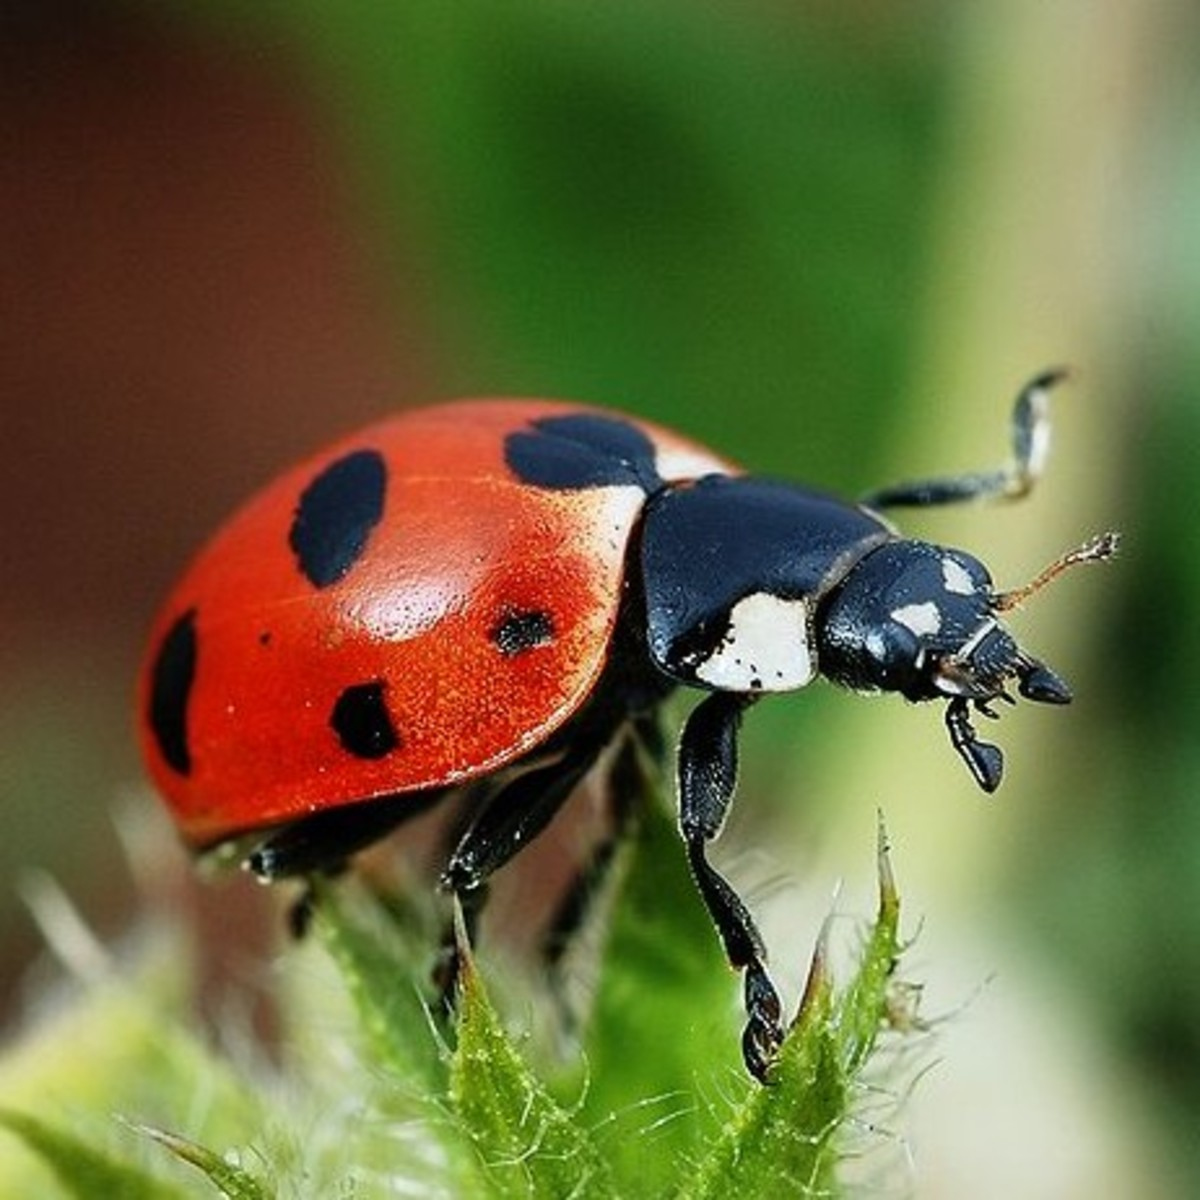 A hungry ladybug on the hunt.